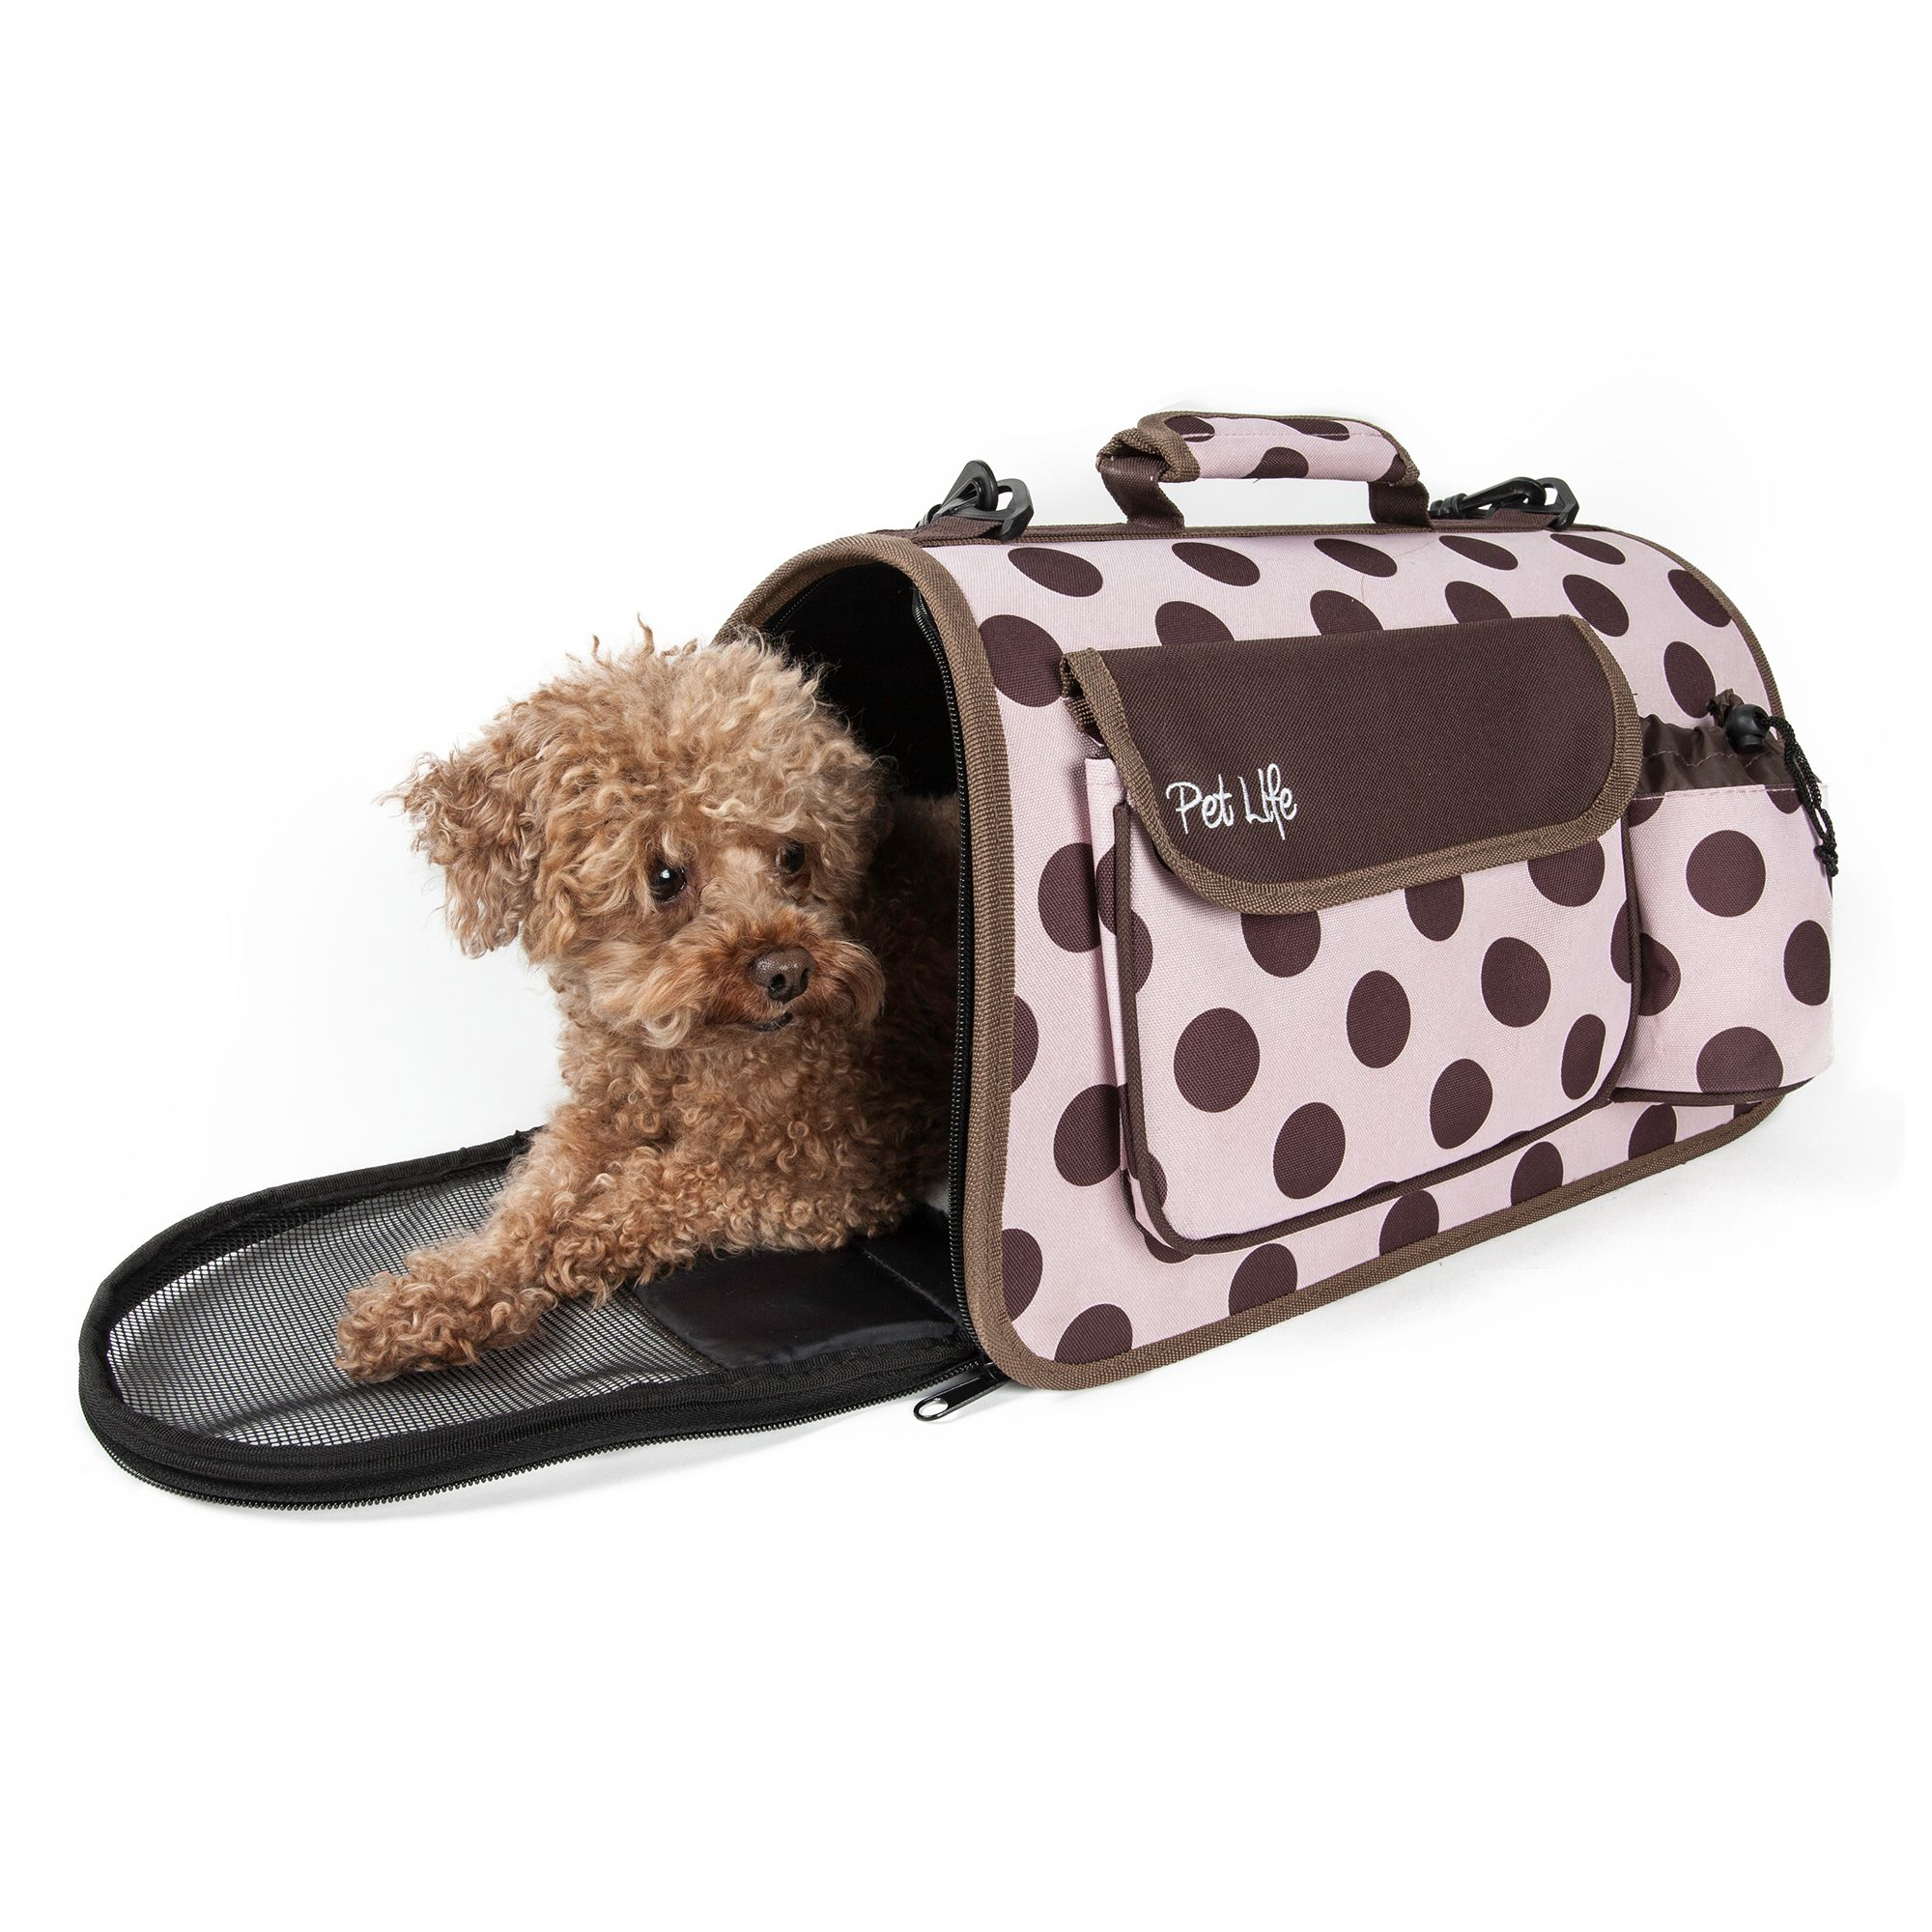 Pet Life Airline Approved Casual Pet Carrier Size 16.9l X 10.2w X 9.8h Pink Brown